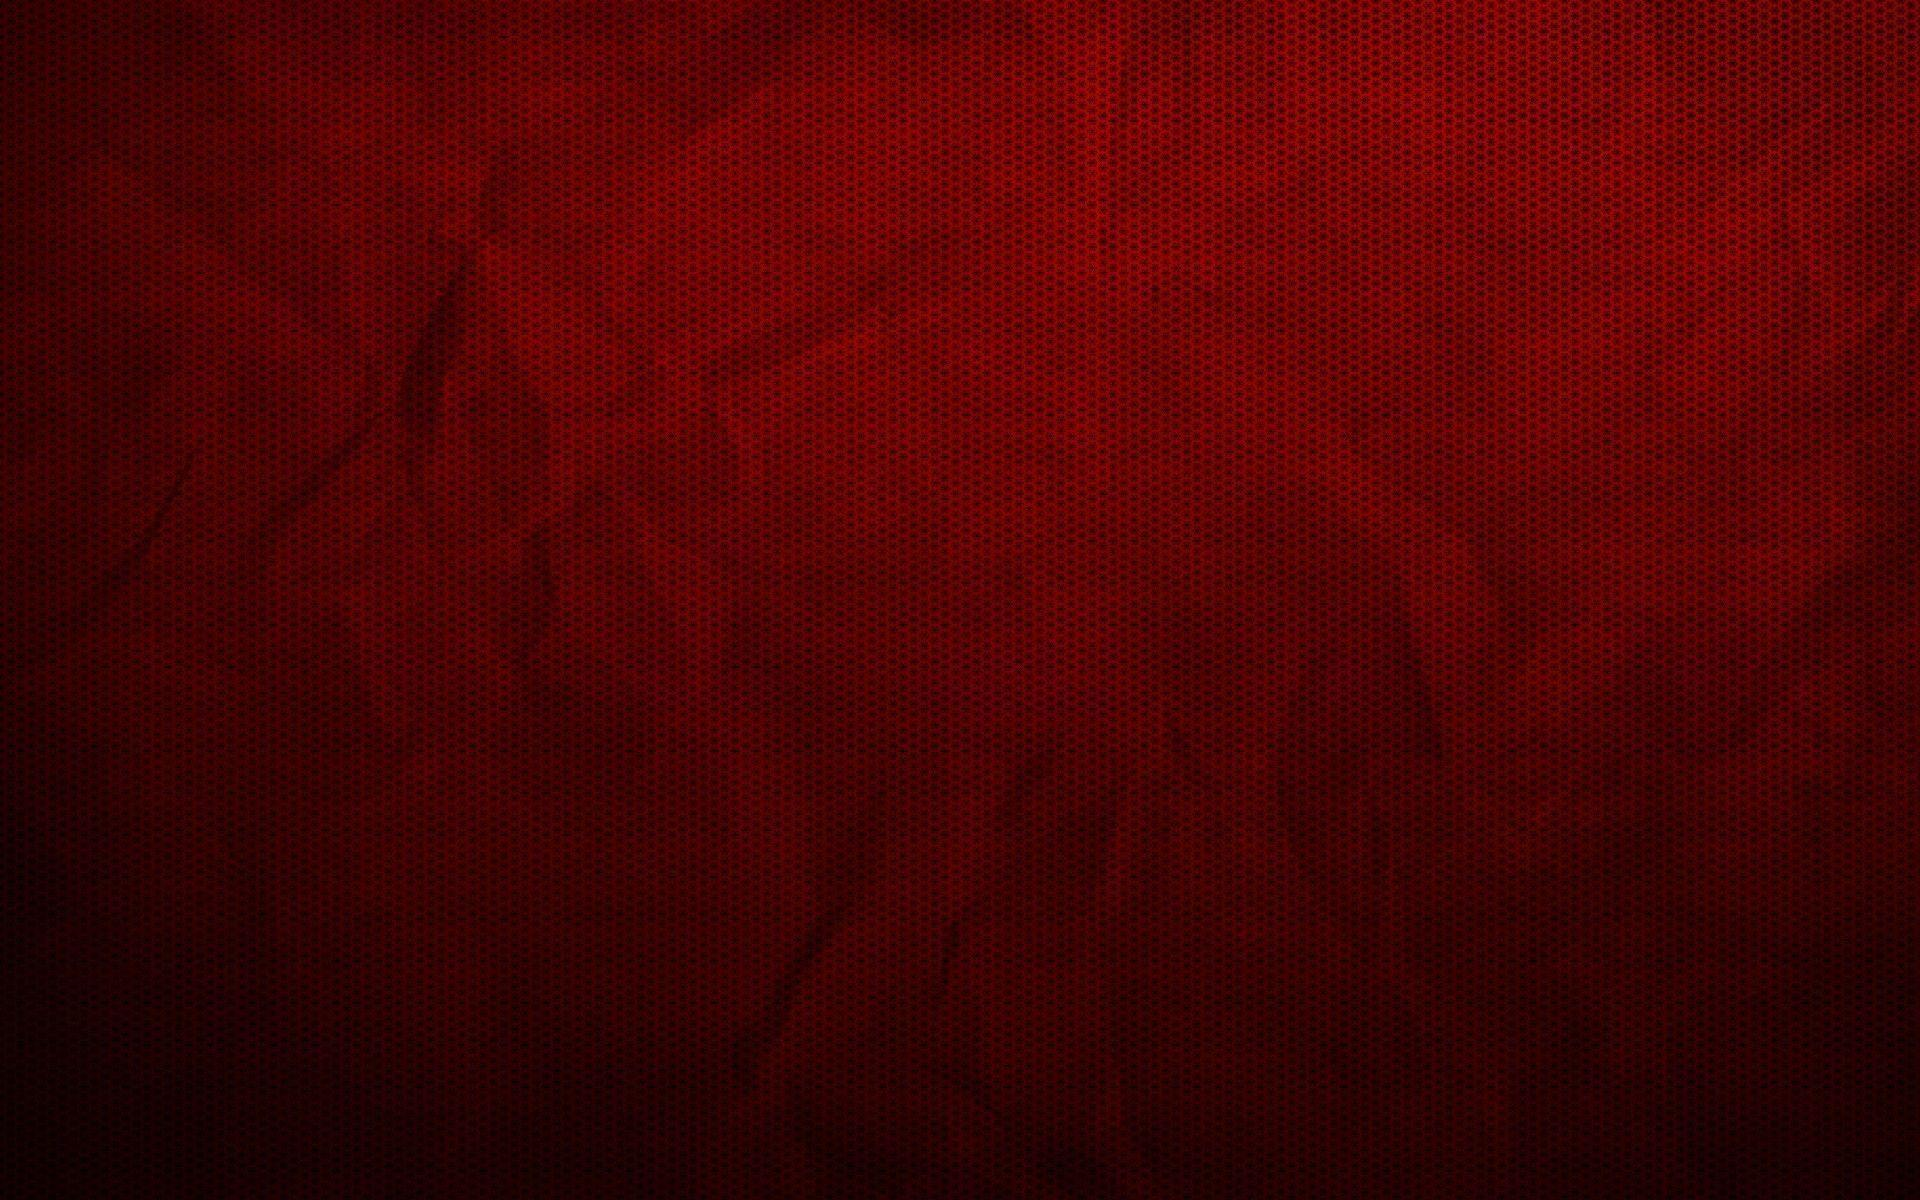 Deep Red Backgrounds 1920x1200